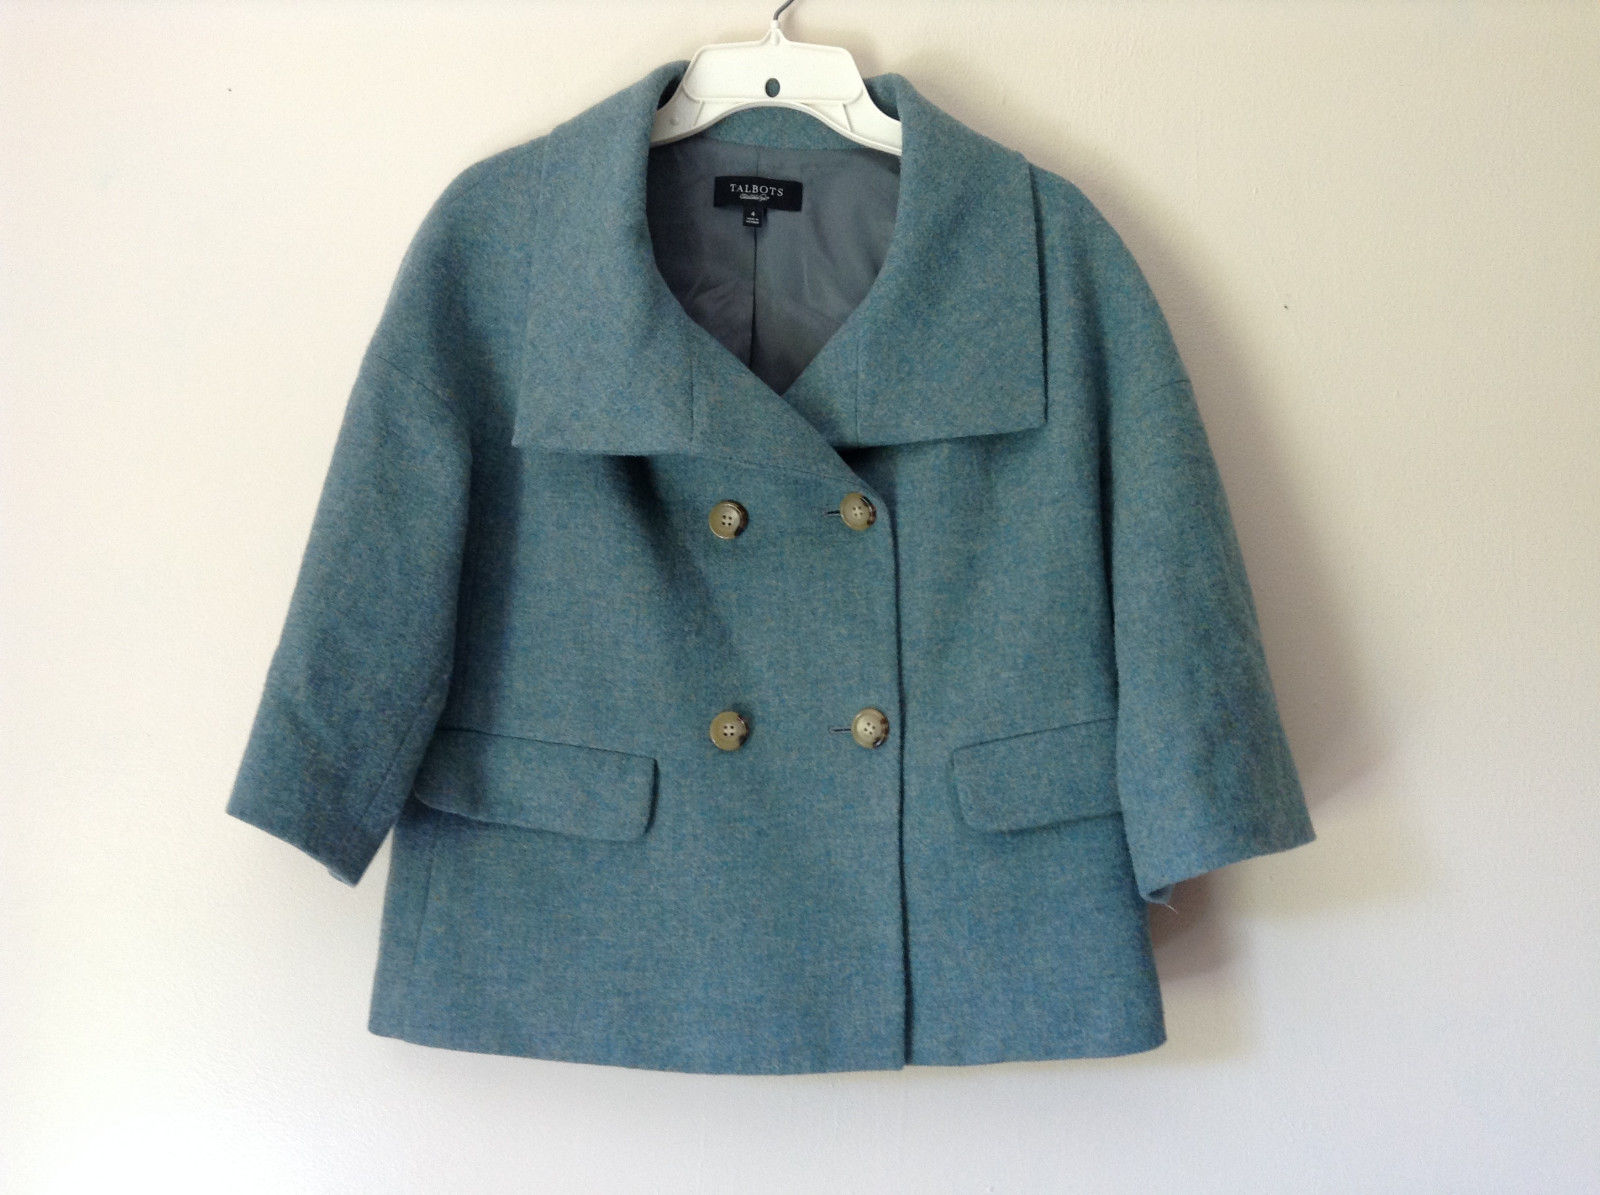 Green Three Quarter Length Sleeves Blazer Jacket from Talbots Size 4